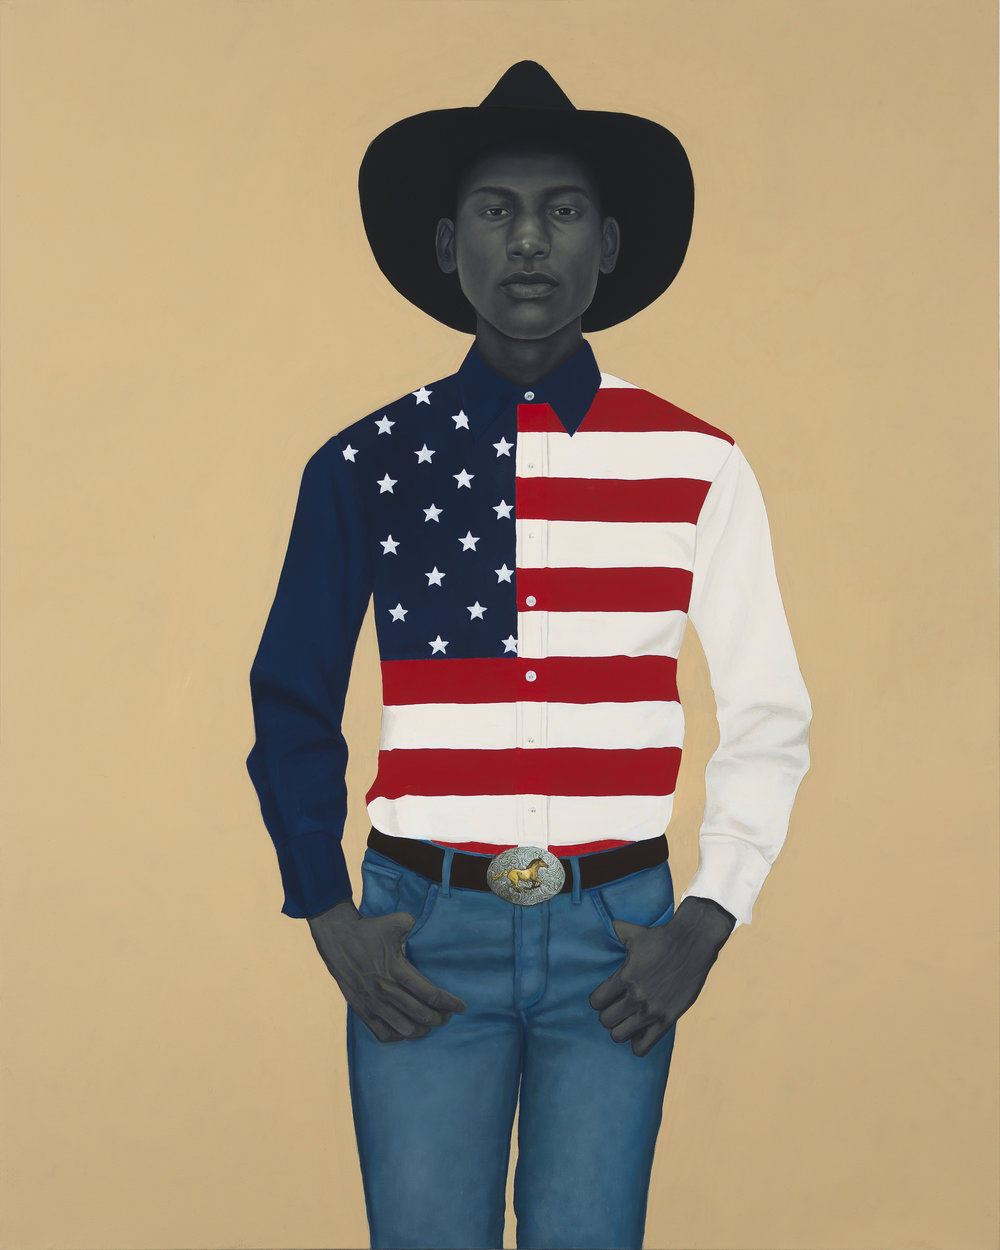 WHAT'S PRECIOUS INSIDE OF HIM DOES NOT CARE TO BE KNOWN BY THE MIND IN WAYS THAT DIMINISH ITS PRESENCE (ALL AMERICAN).   2017, 54 x 43 inches, Oil on Canvas